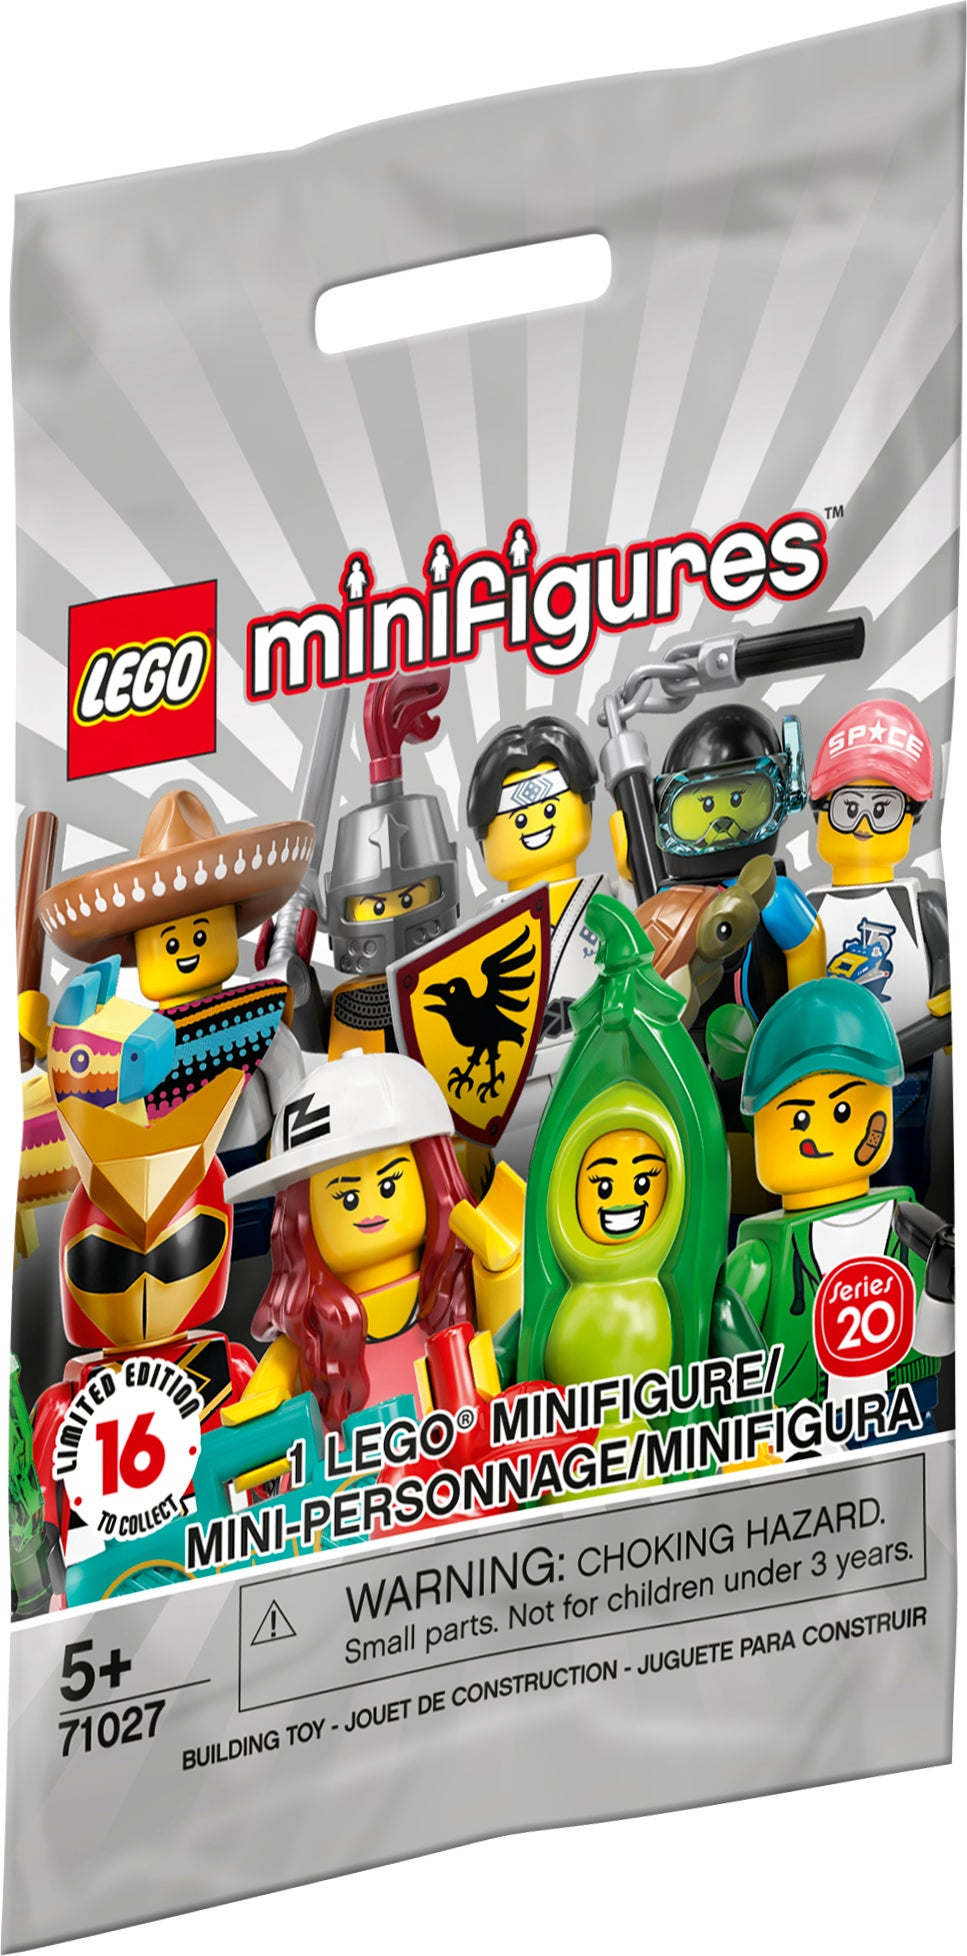 Bundle Of 20 Figures All In Good//Clean Condition Genuine Lego Minifigures